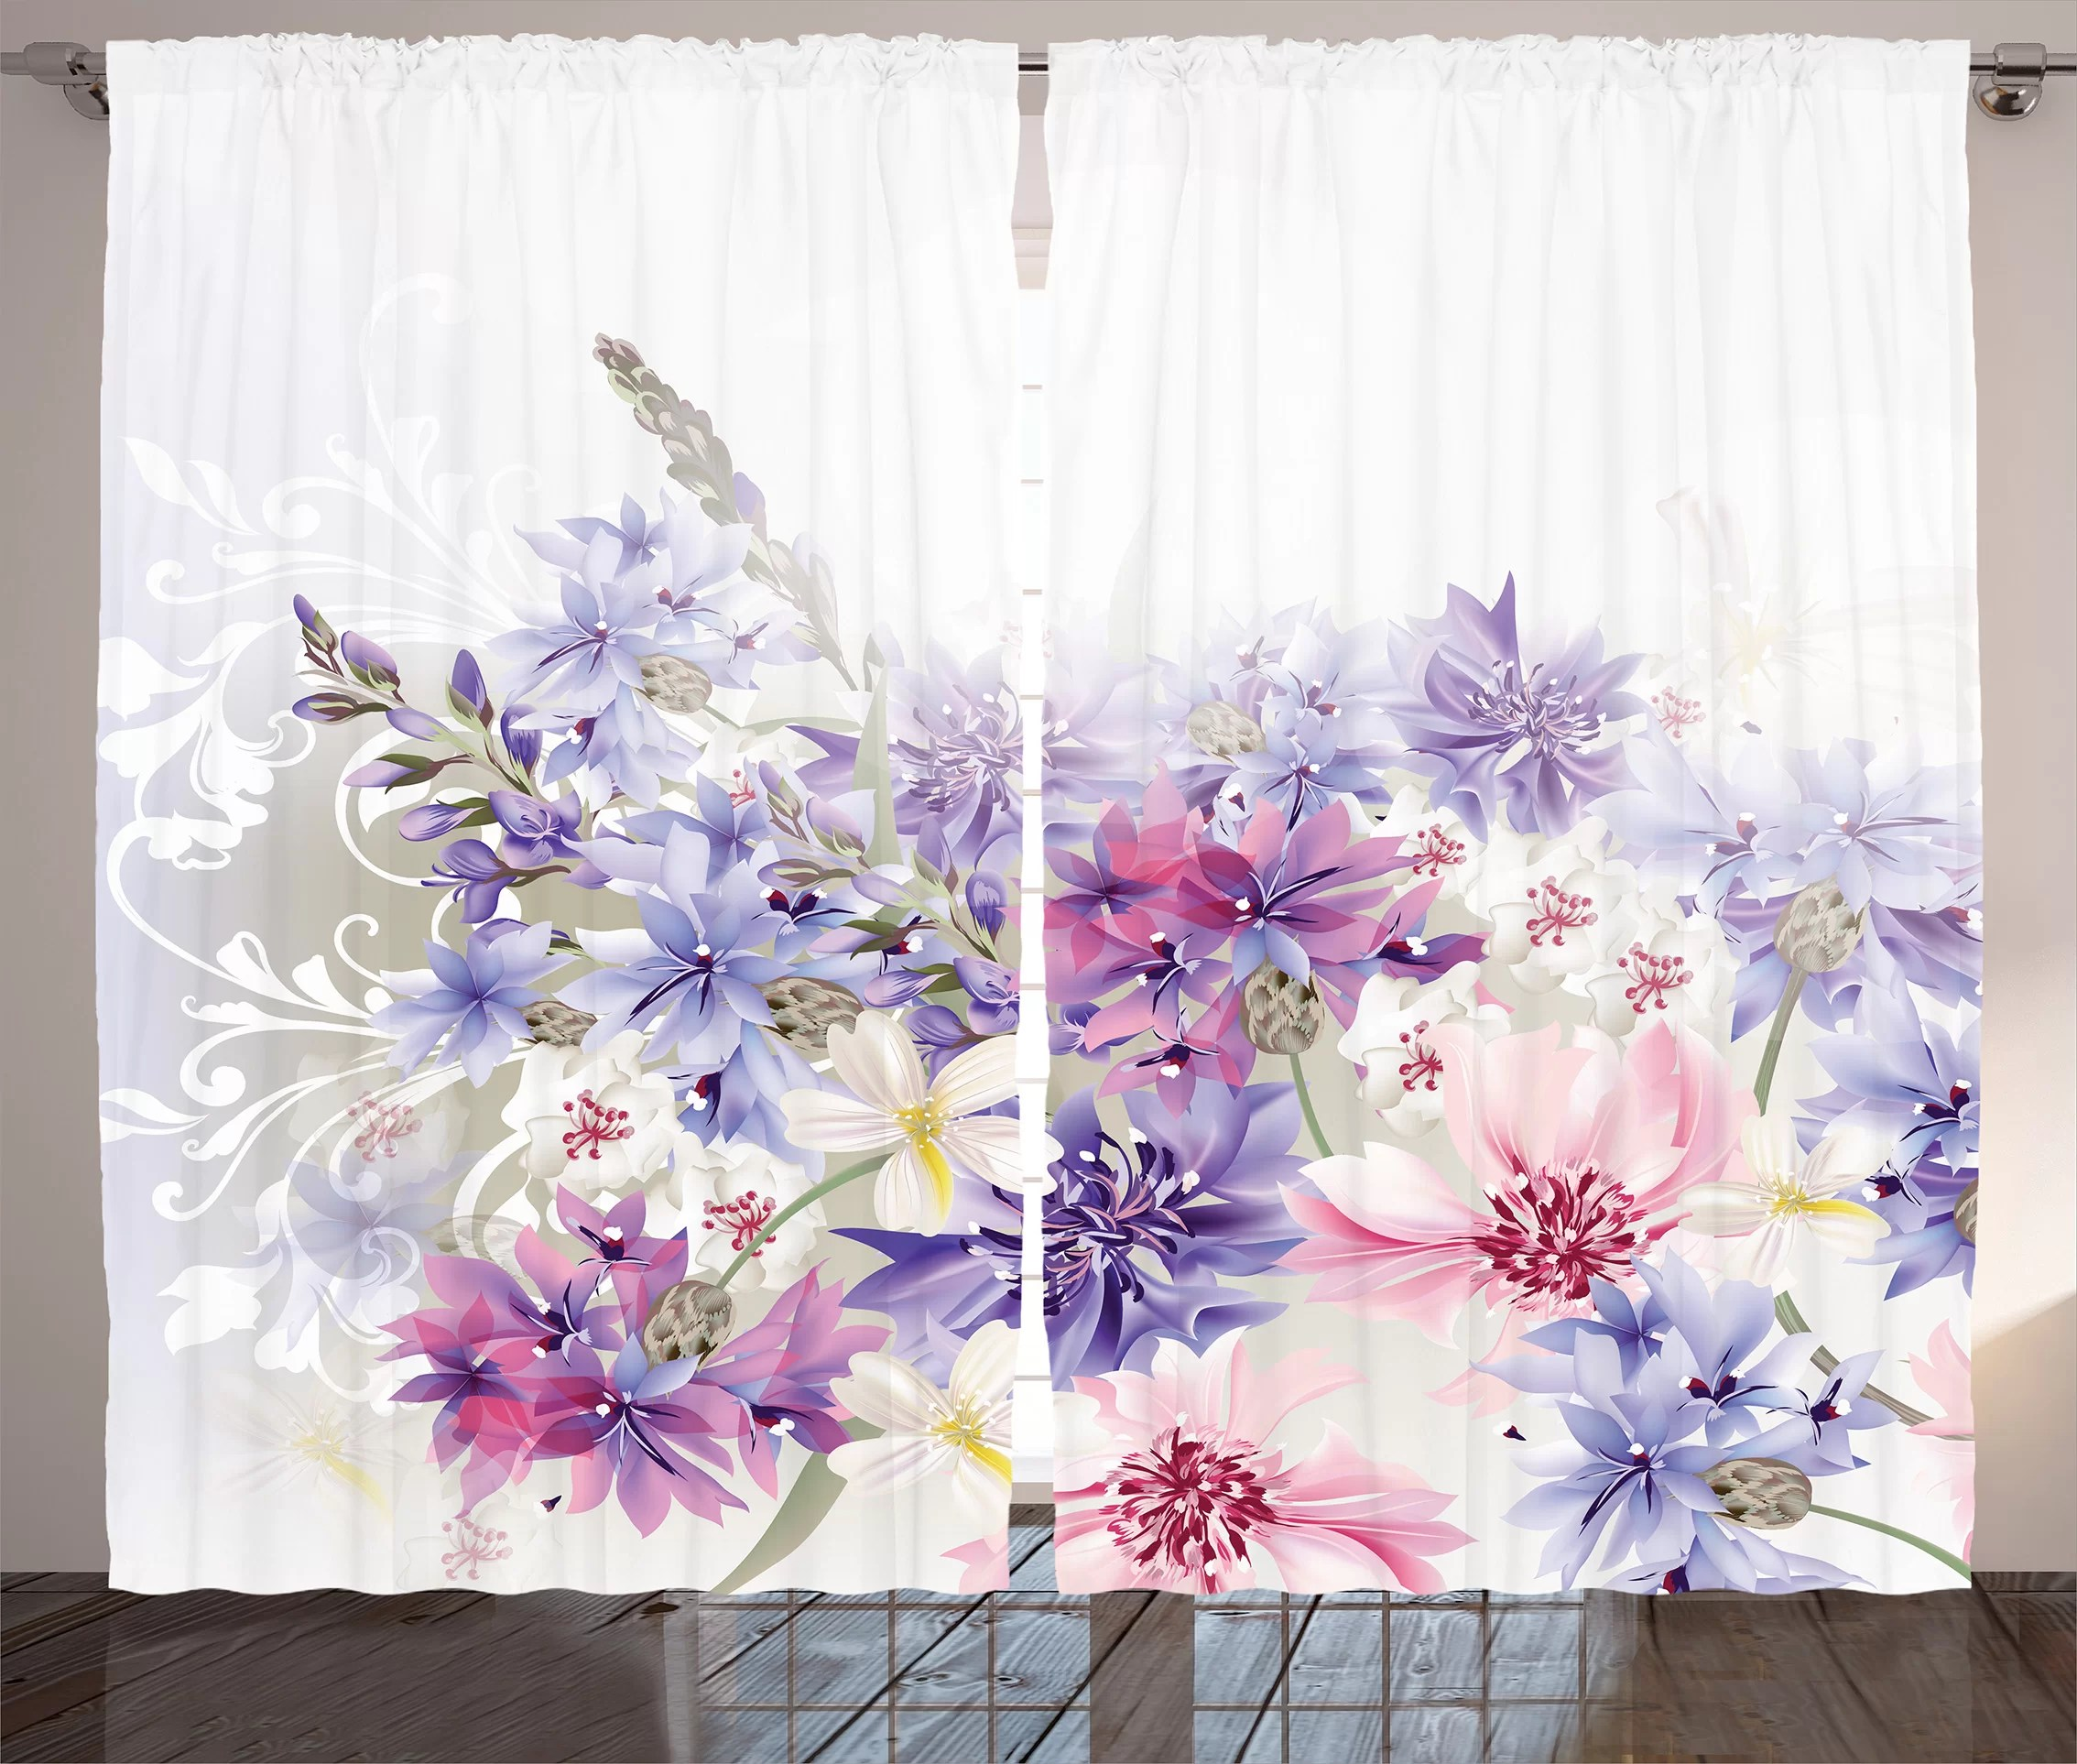 Lavender Sheer Curtains Cabarita Lavender Pastel Cornflowers Bridal Classic Design Gentle Floral Wedding Print Graphic Print Text Semi Sheer Rod Pocket Curtain Panels